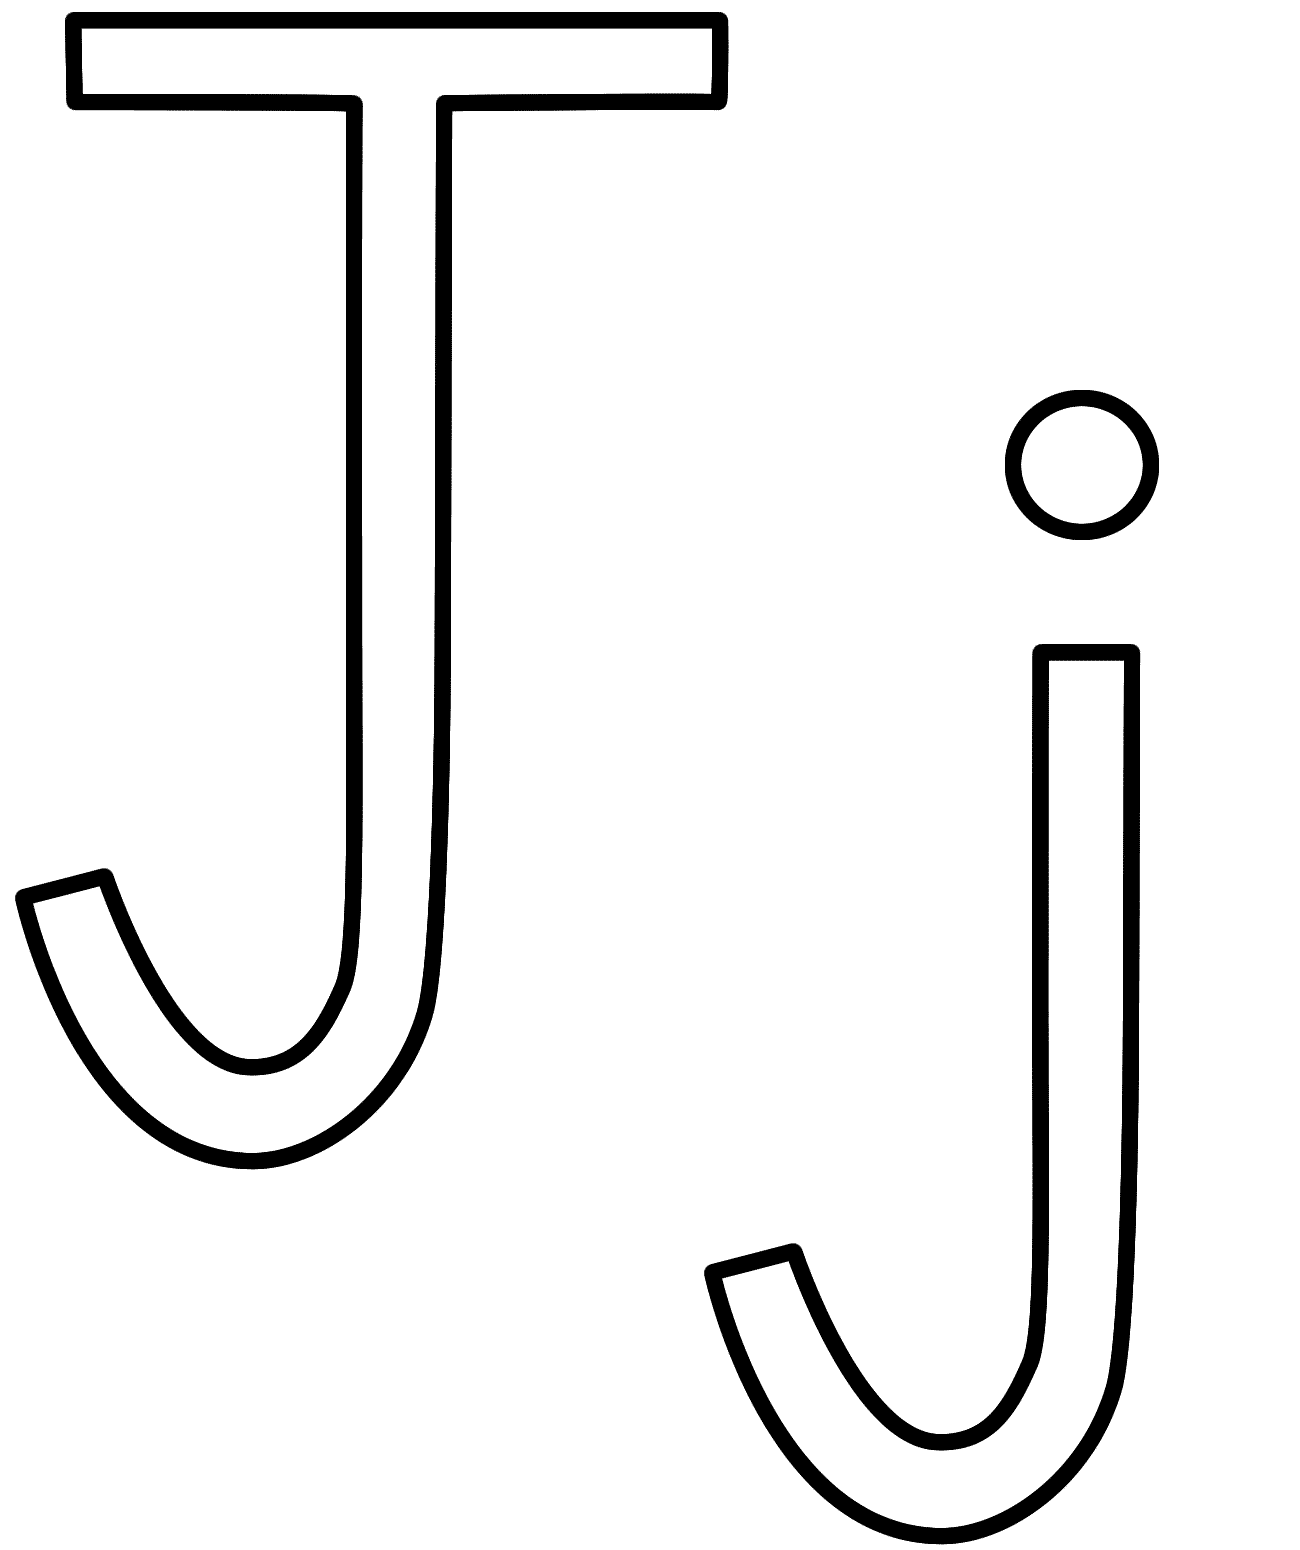 coloring letter j letter j coloring pages to download and print for free j coloring letter